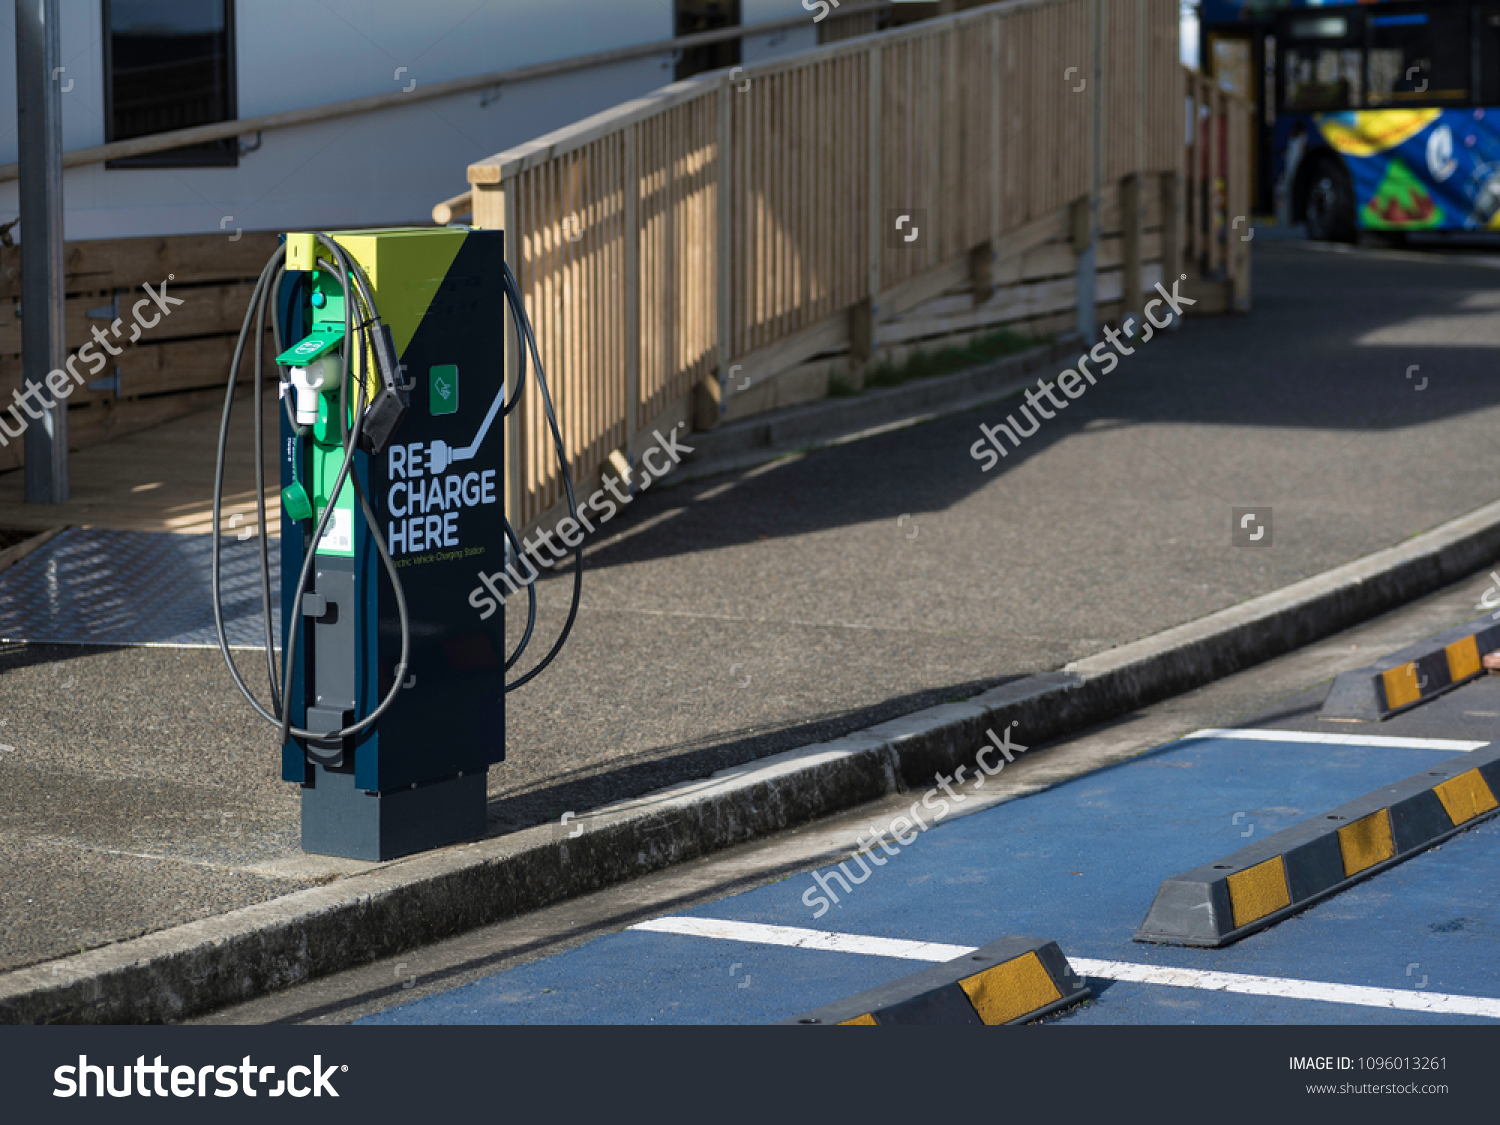 Recharging Station Electric Vehicles Domain Auckland Stock